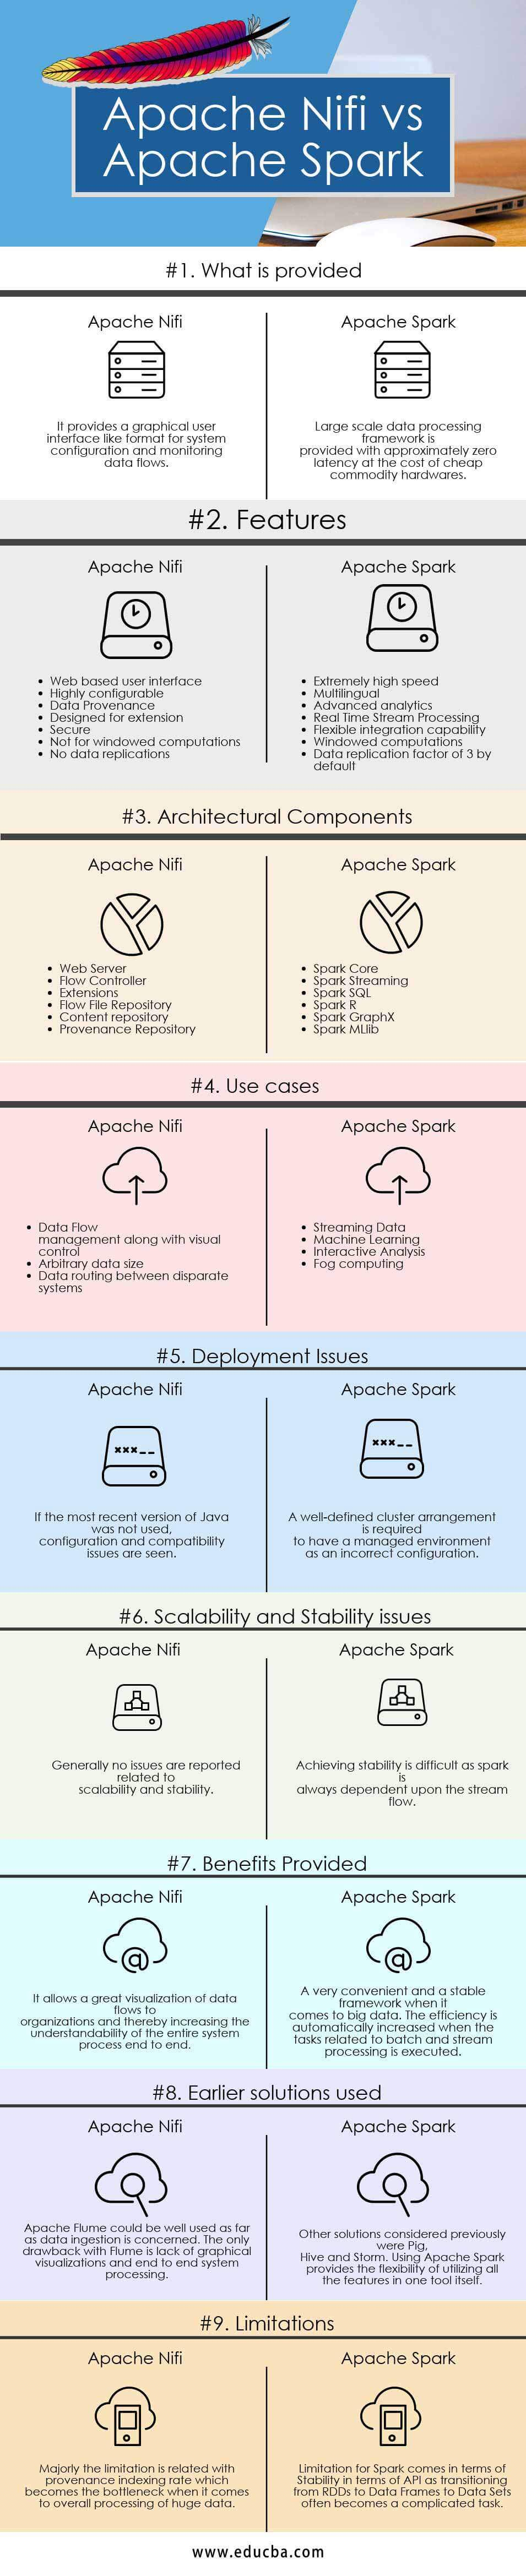 Apache Nifi vs Apache Spark - 9 Useful Comparison To Learn